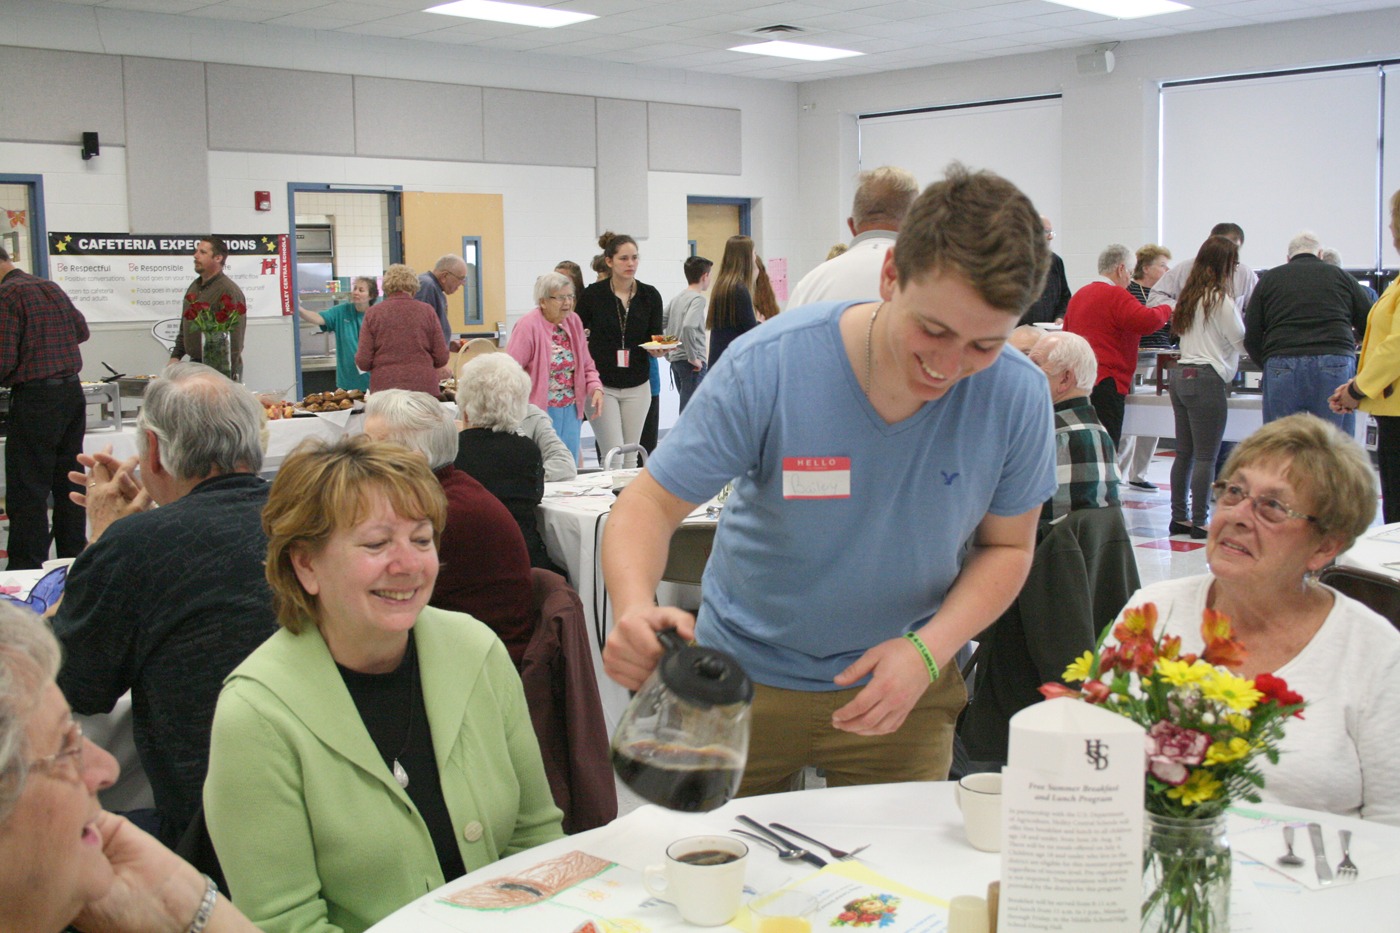 Senior Bailey Schubmehl pours coffee for attendees at the breakfast. Provided photo